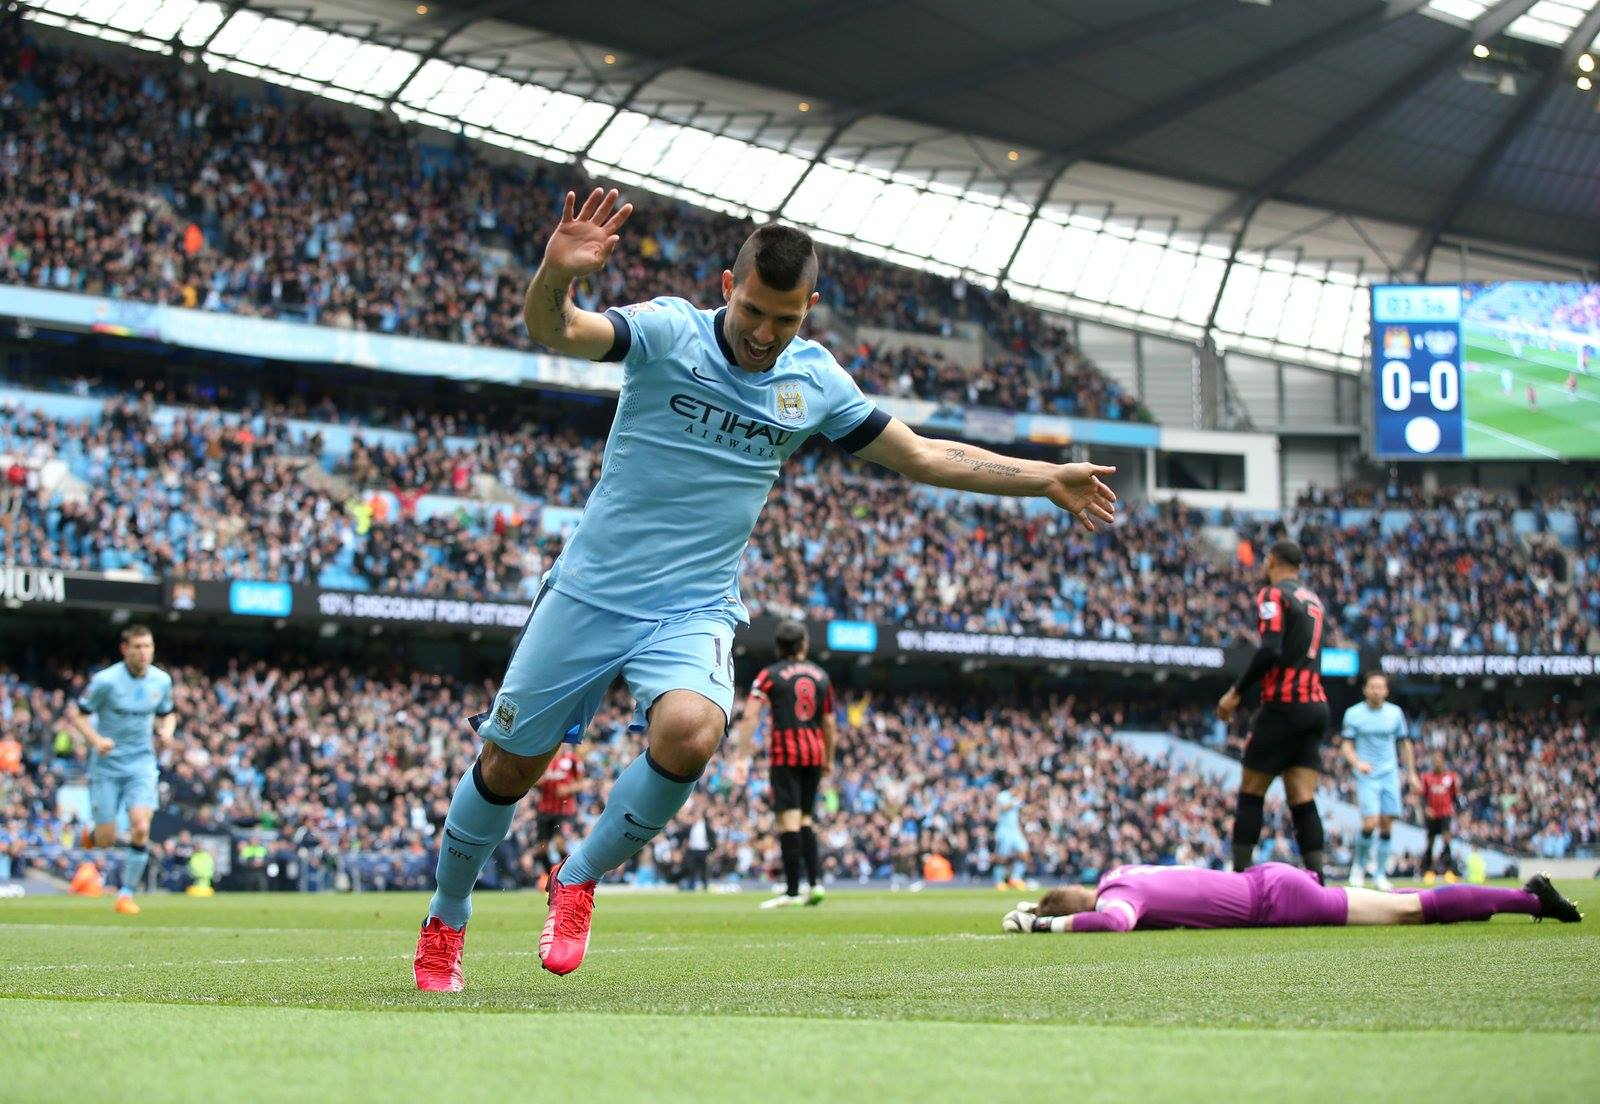 Unstoppable - Sergio is one of a handful of City players who haven't underperformed this season. Courtesy@MCFC